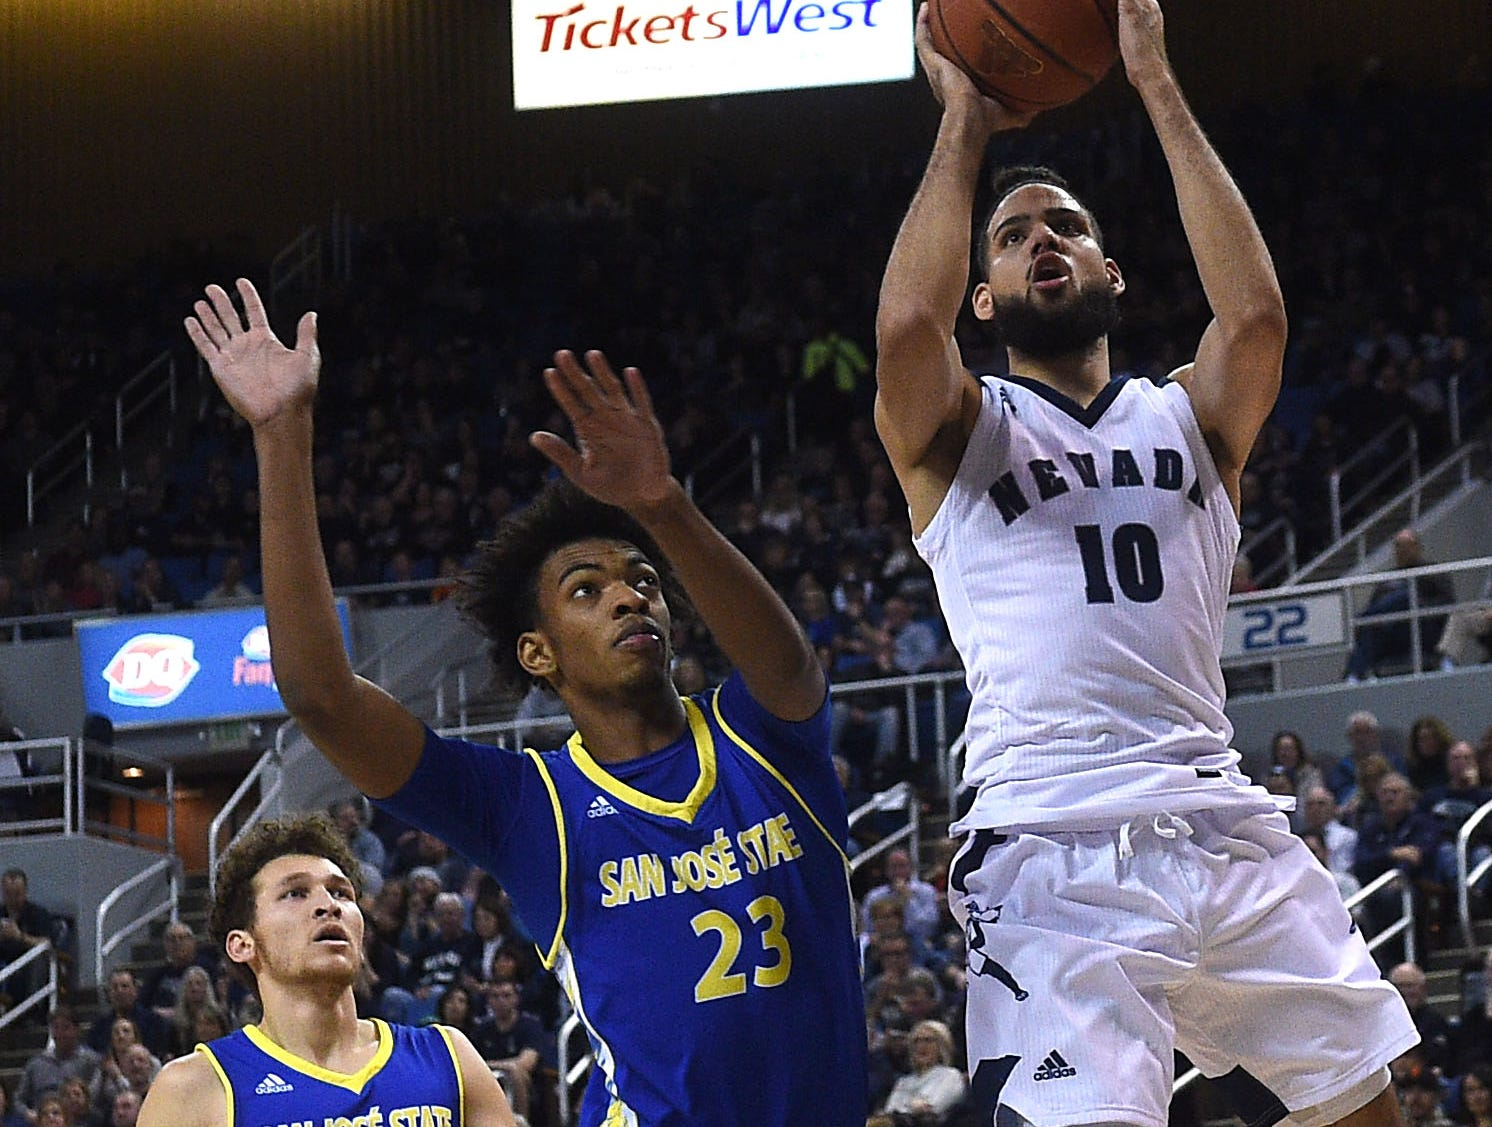 Nevada's Caleb Martin shoots while taking on San Jose State during their basketball game at Lawlor Events Center in Reno on Jan. 9, 2019.